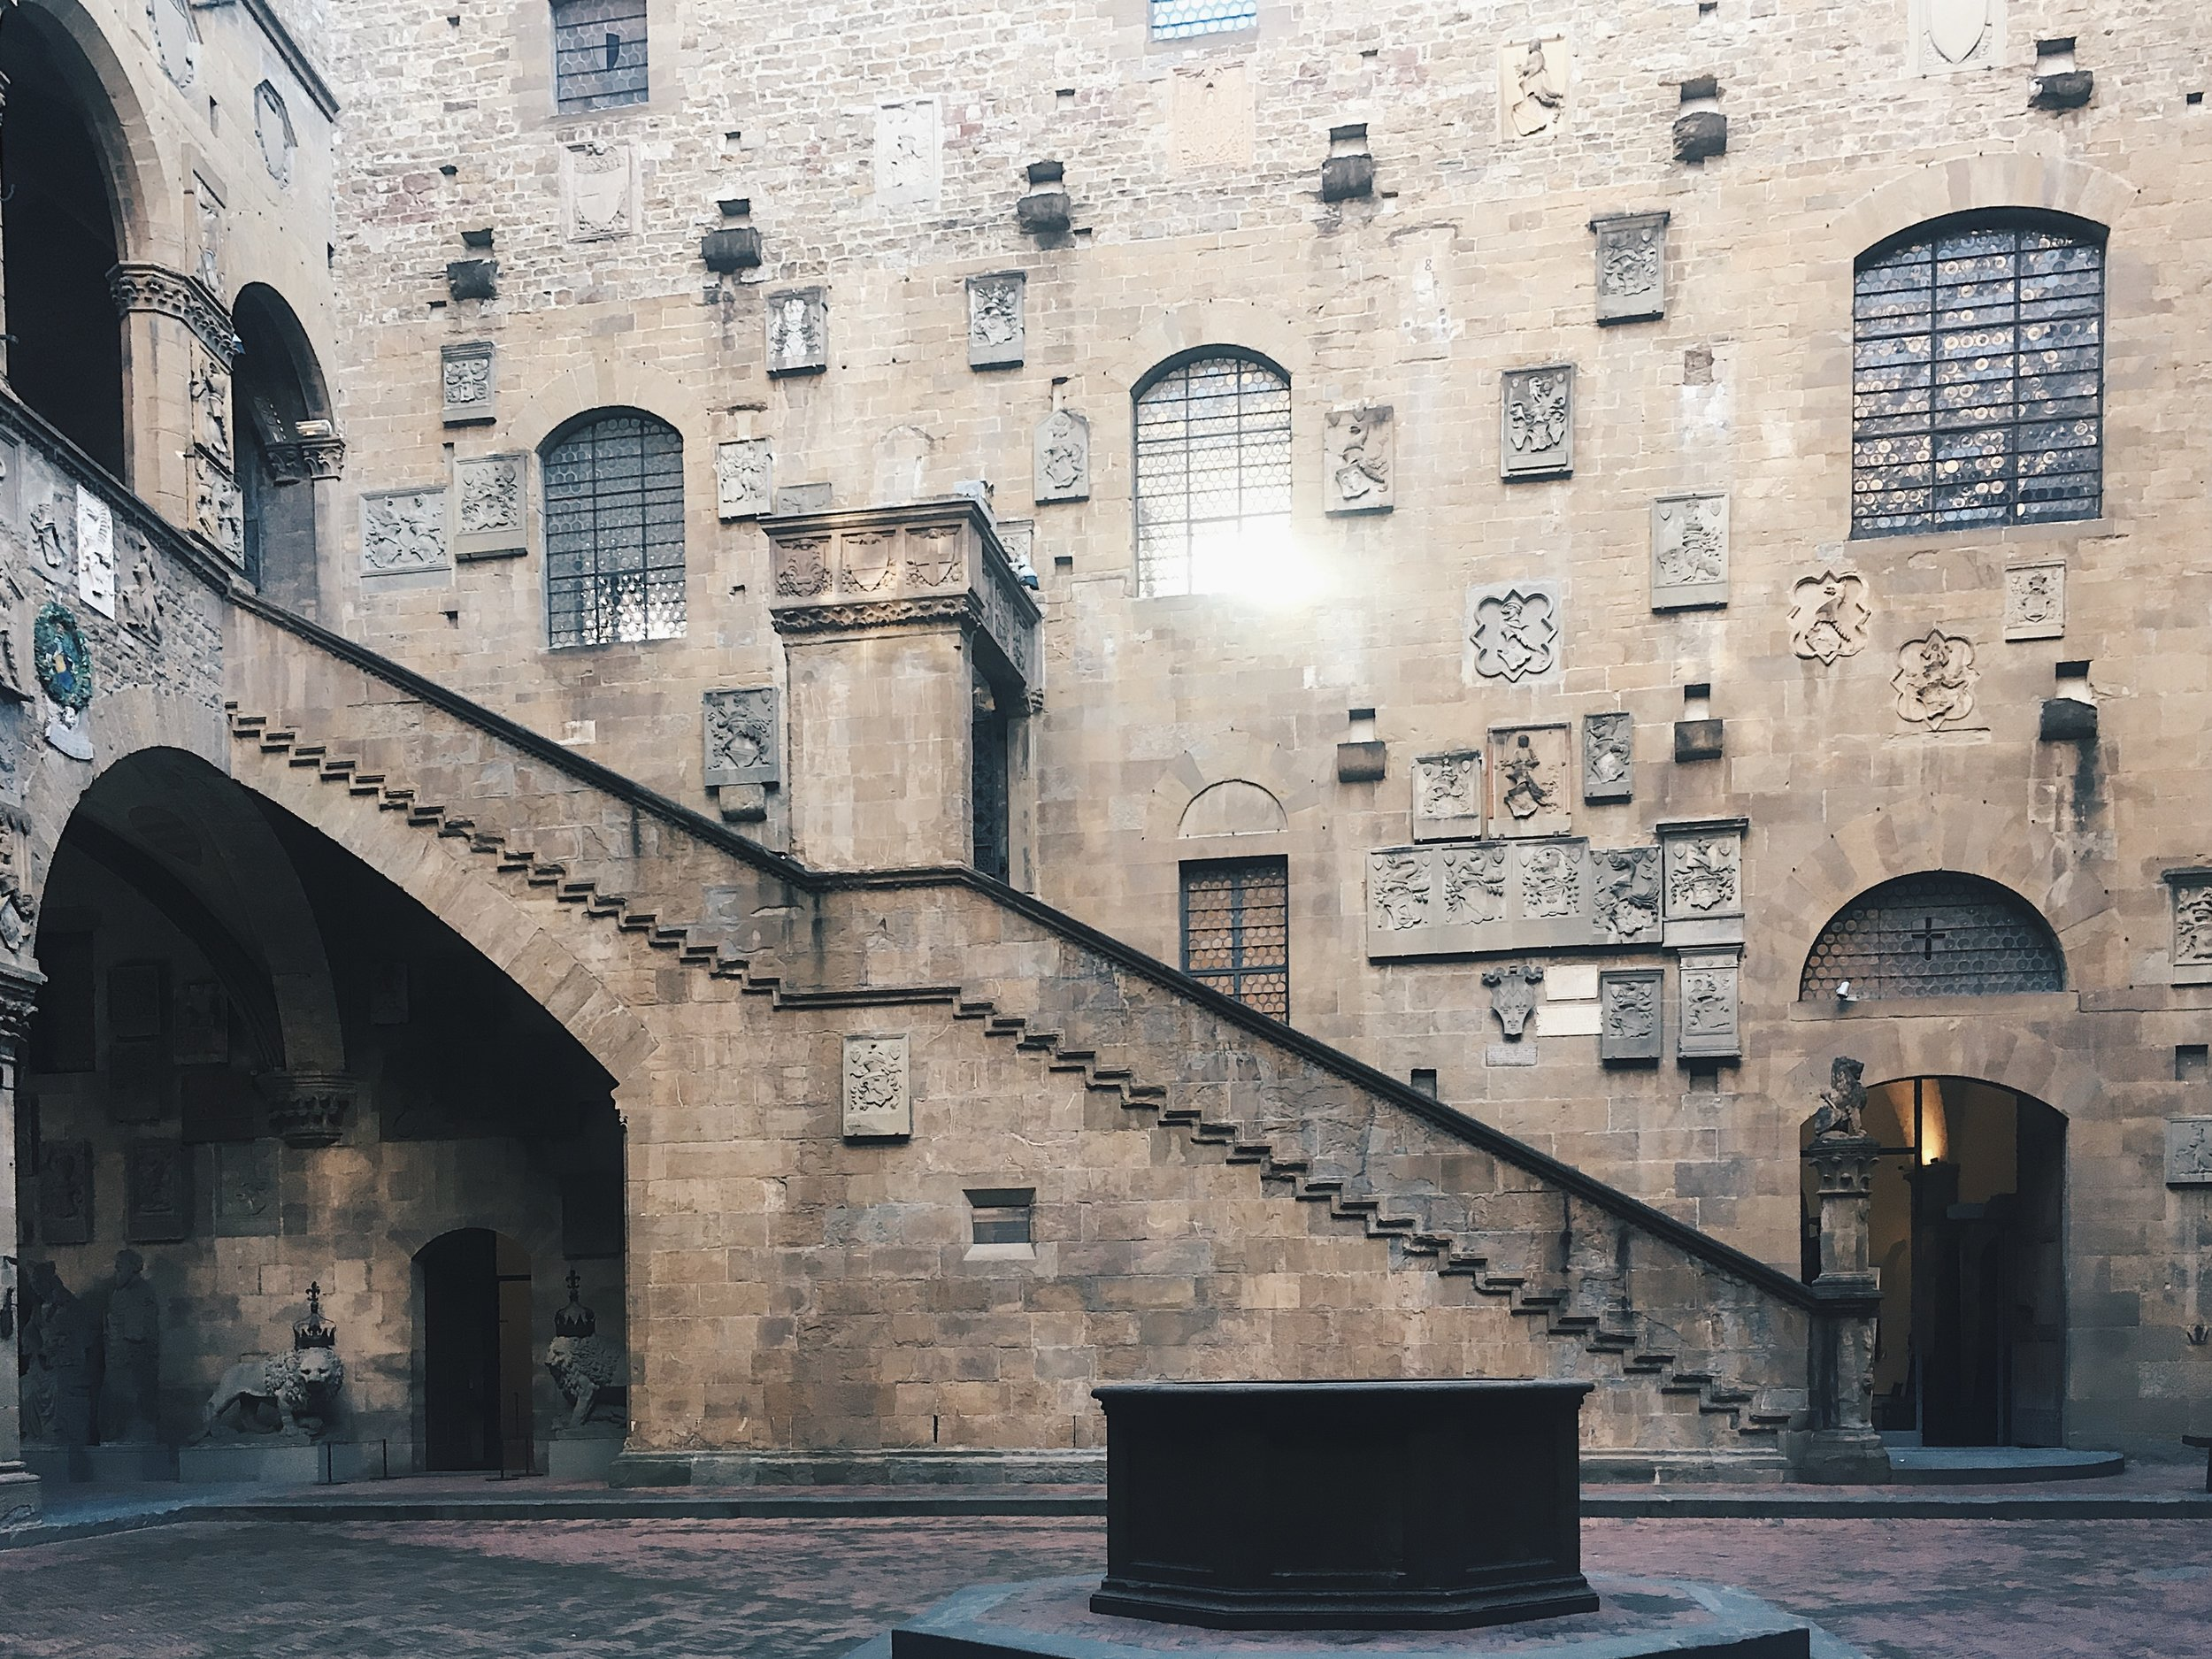 Museo Nazionale di Bargello, photographed by Rory Mara.